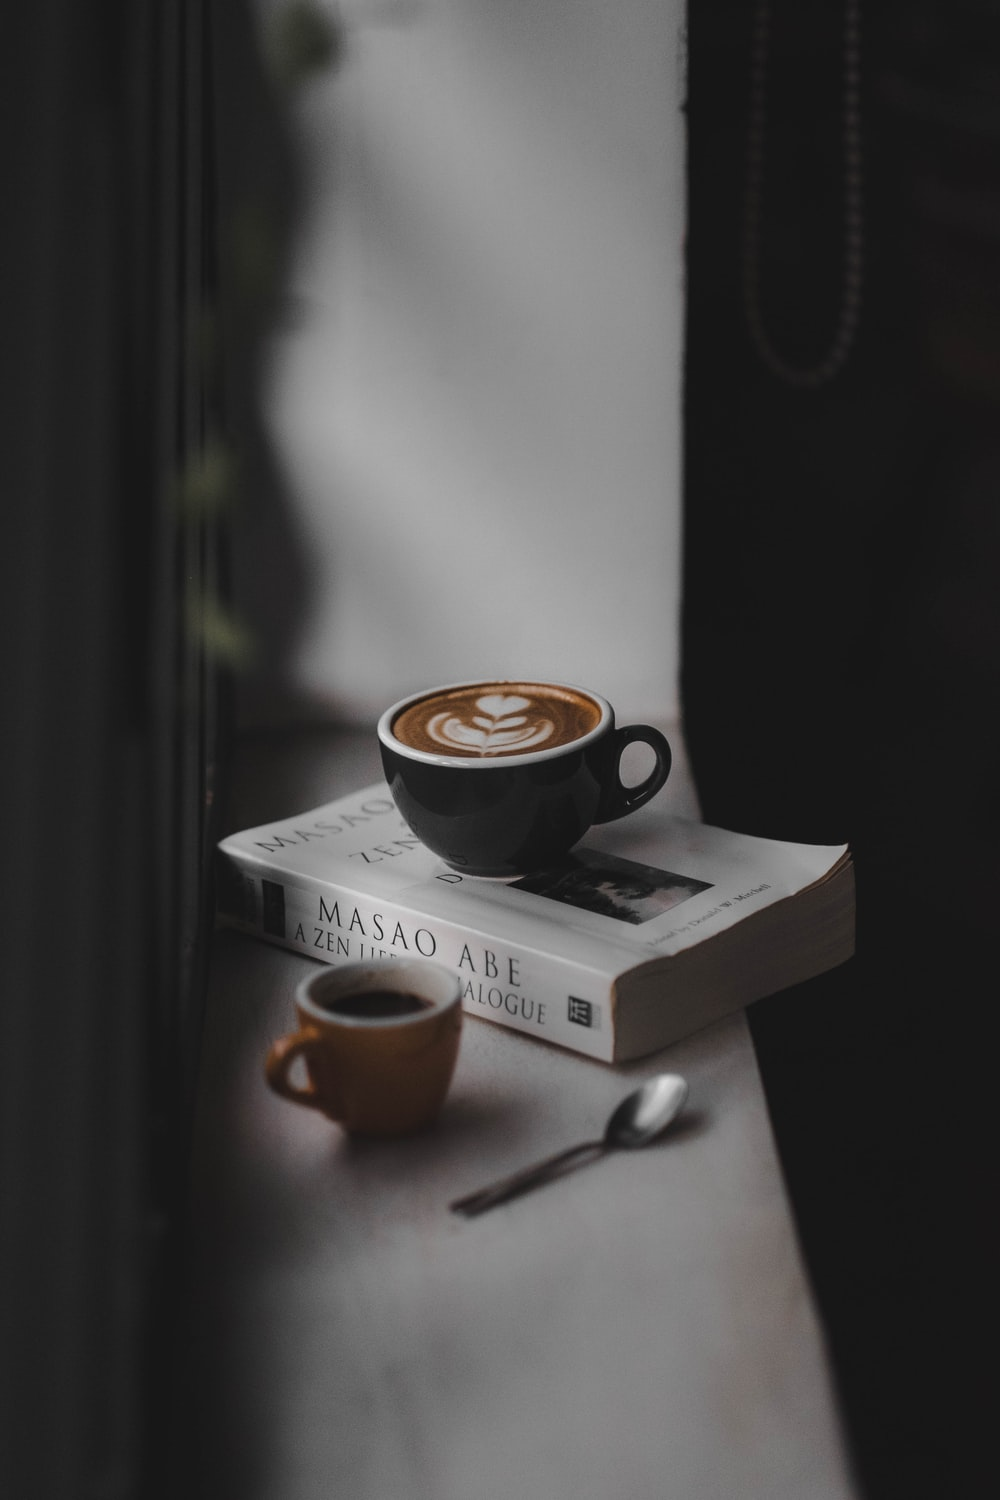 latte filled black teacup on top of book near brown cup on window